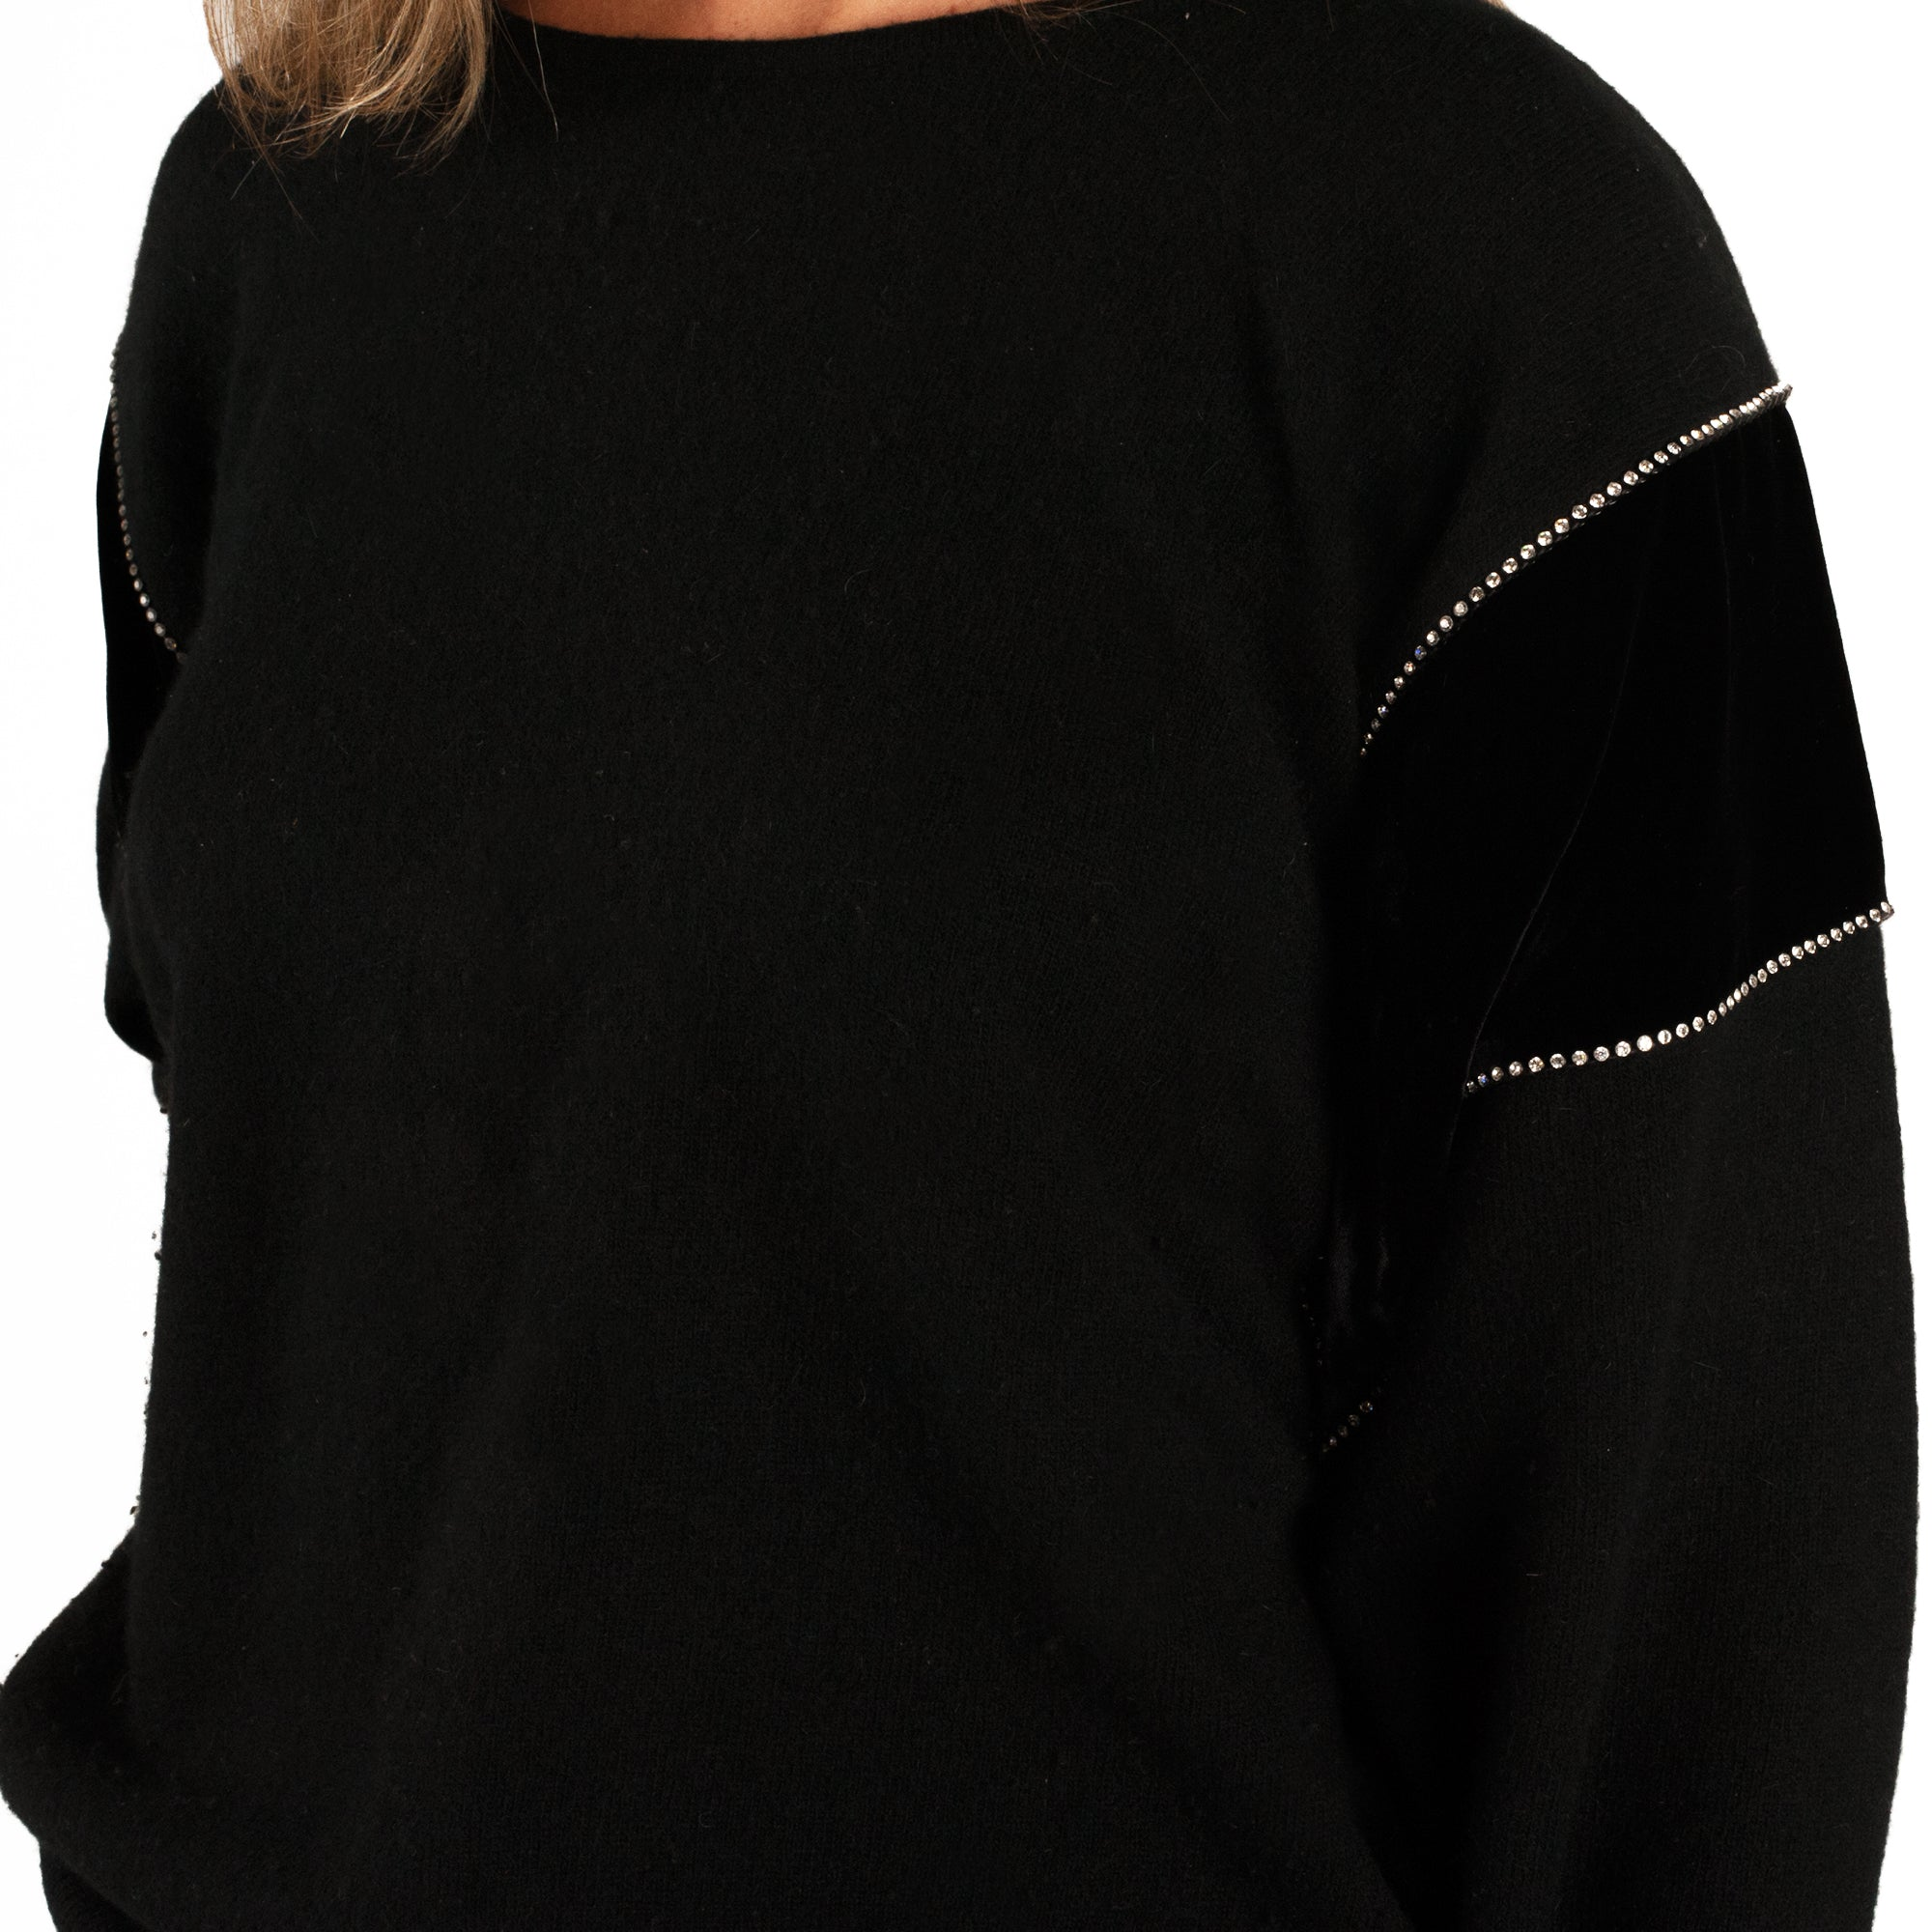 Valentino Diamante Trim Sweater (Black) UK 6-10